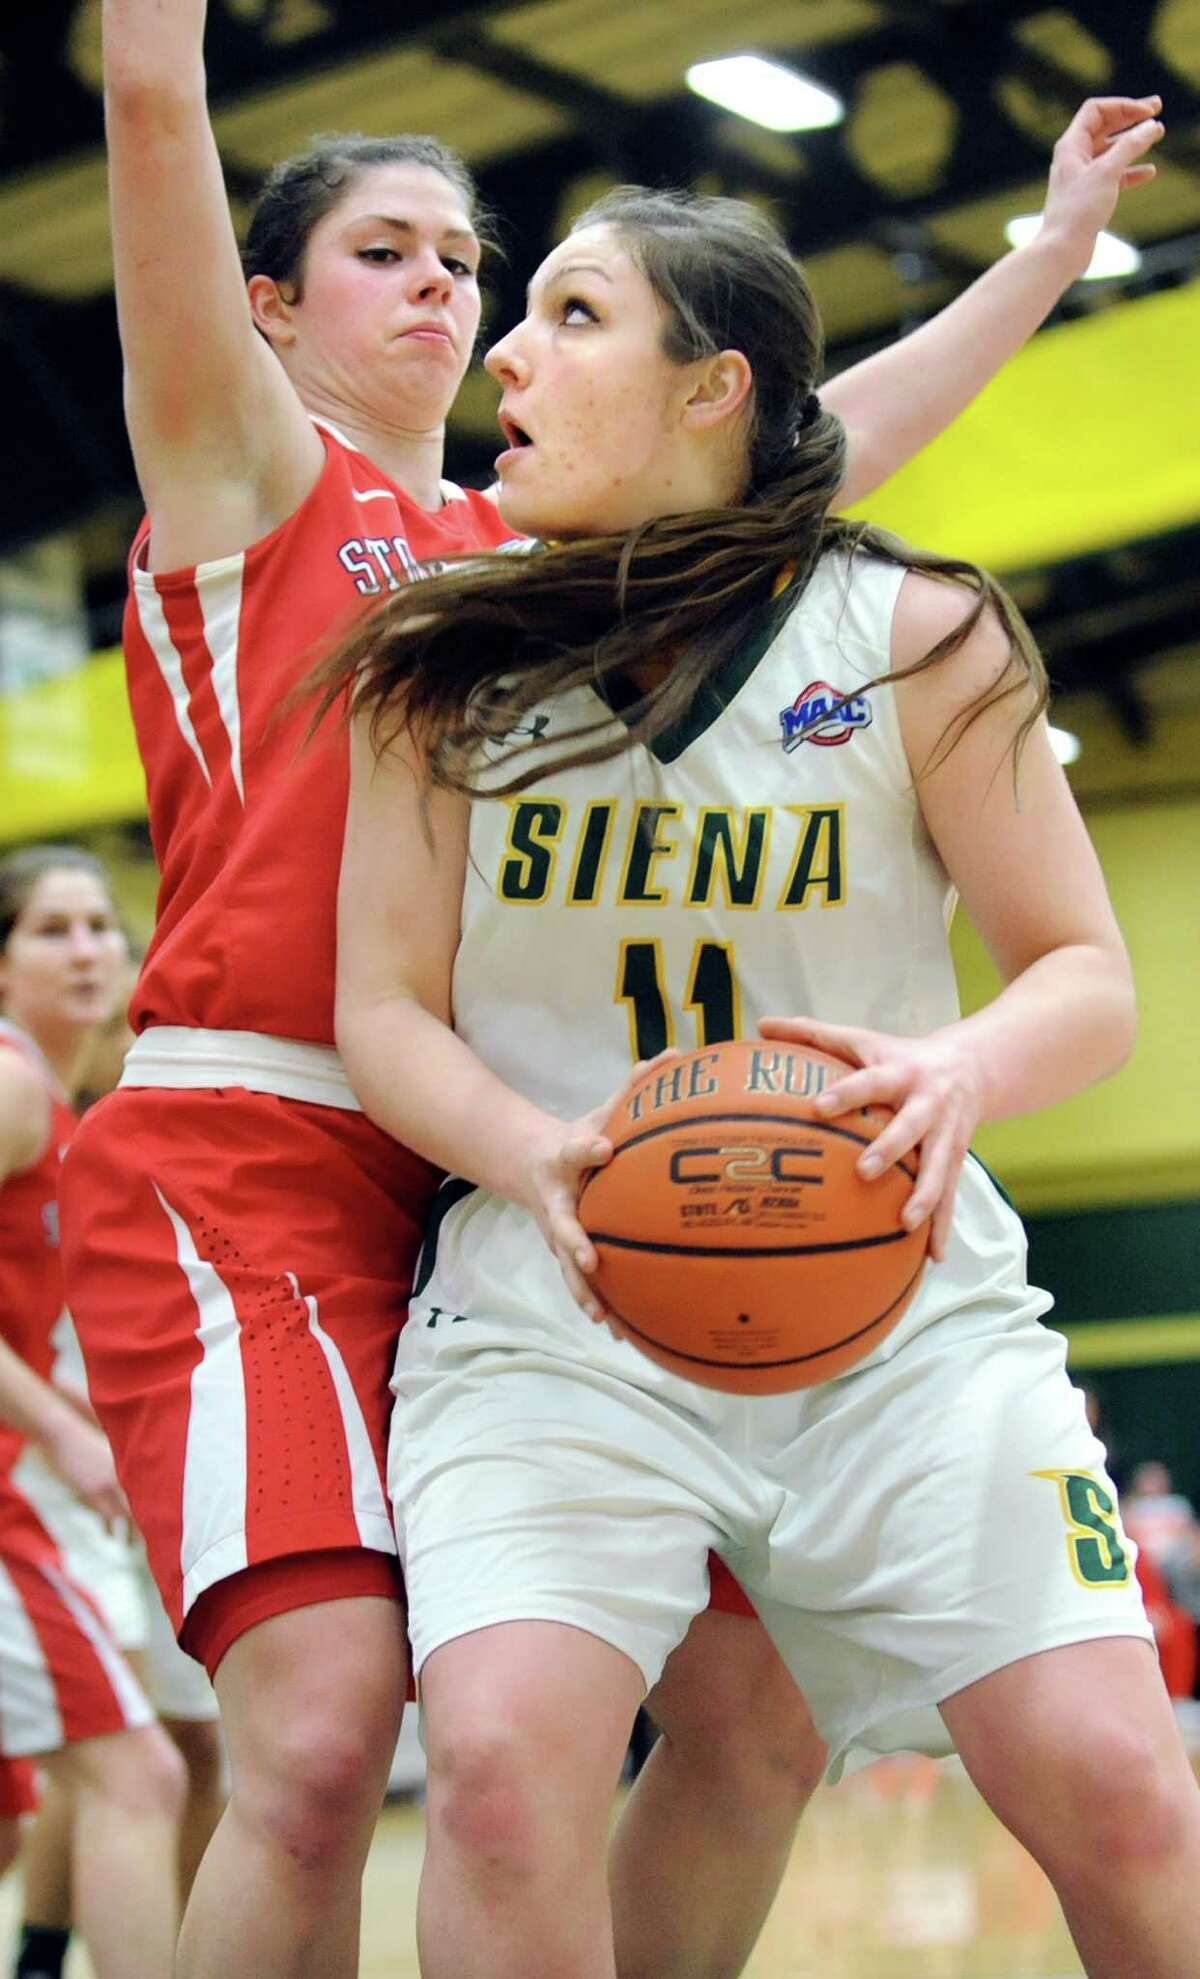 Siena's Margot Hetzke, right, looks to the hoop as Stony Brook's Brittany Snow defends during the Women's Basketball Invitational on Thursday, March 19, 2015, at Siena College in Loudonville, N.Y. Siena wins 53-46. (Cindy Schultz / Times Union)